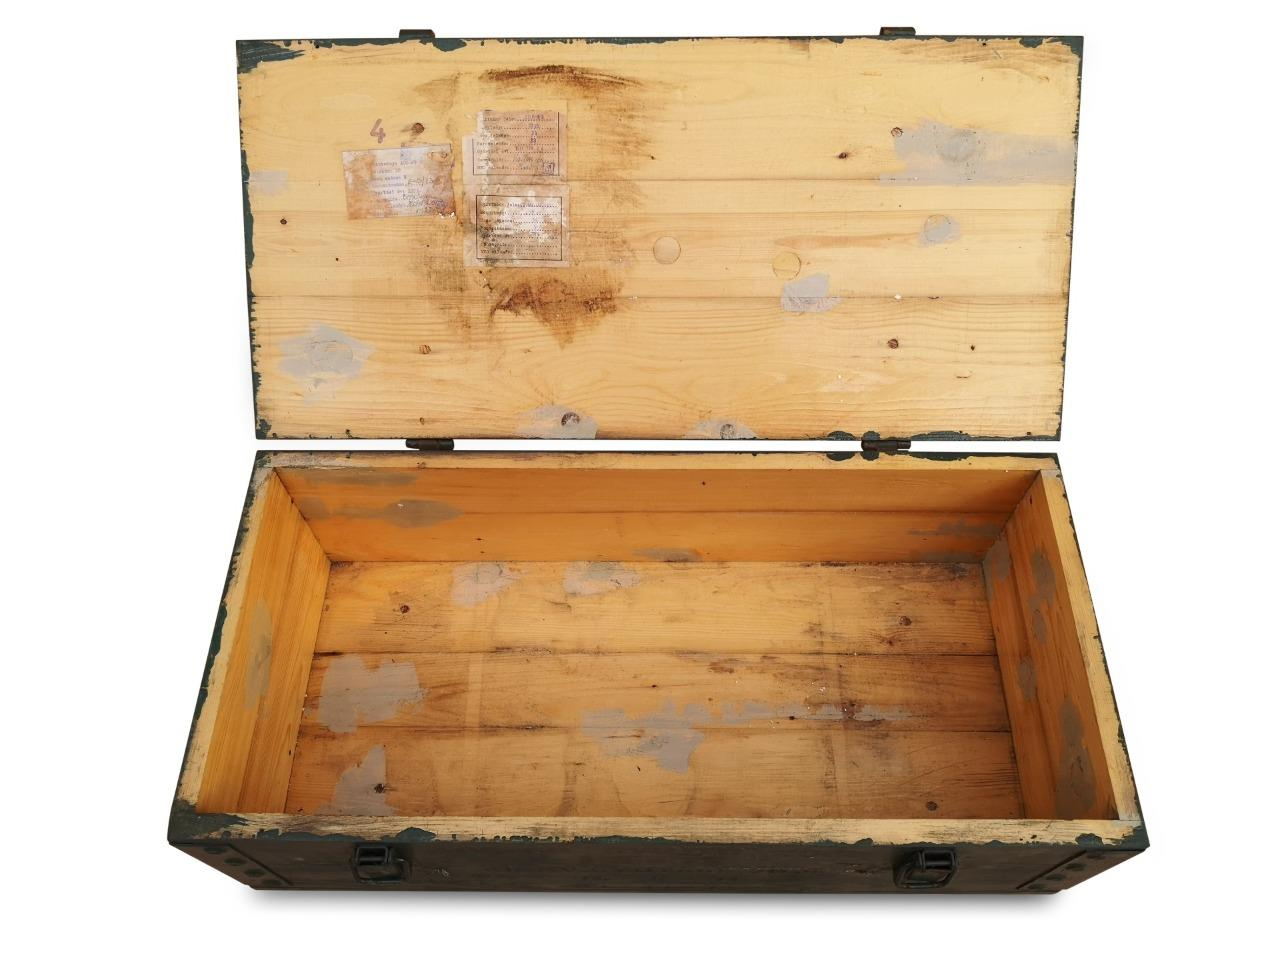 SMALL GREEN GARDEN CHEST TRUNK STORAGE BOX TOOL BOX WITH HANDLES AND CLIPS